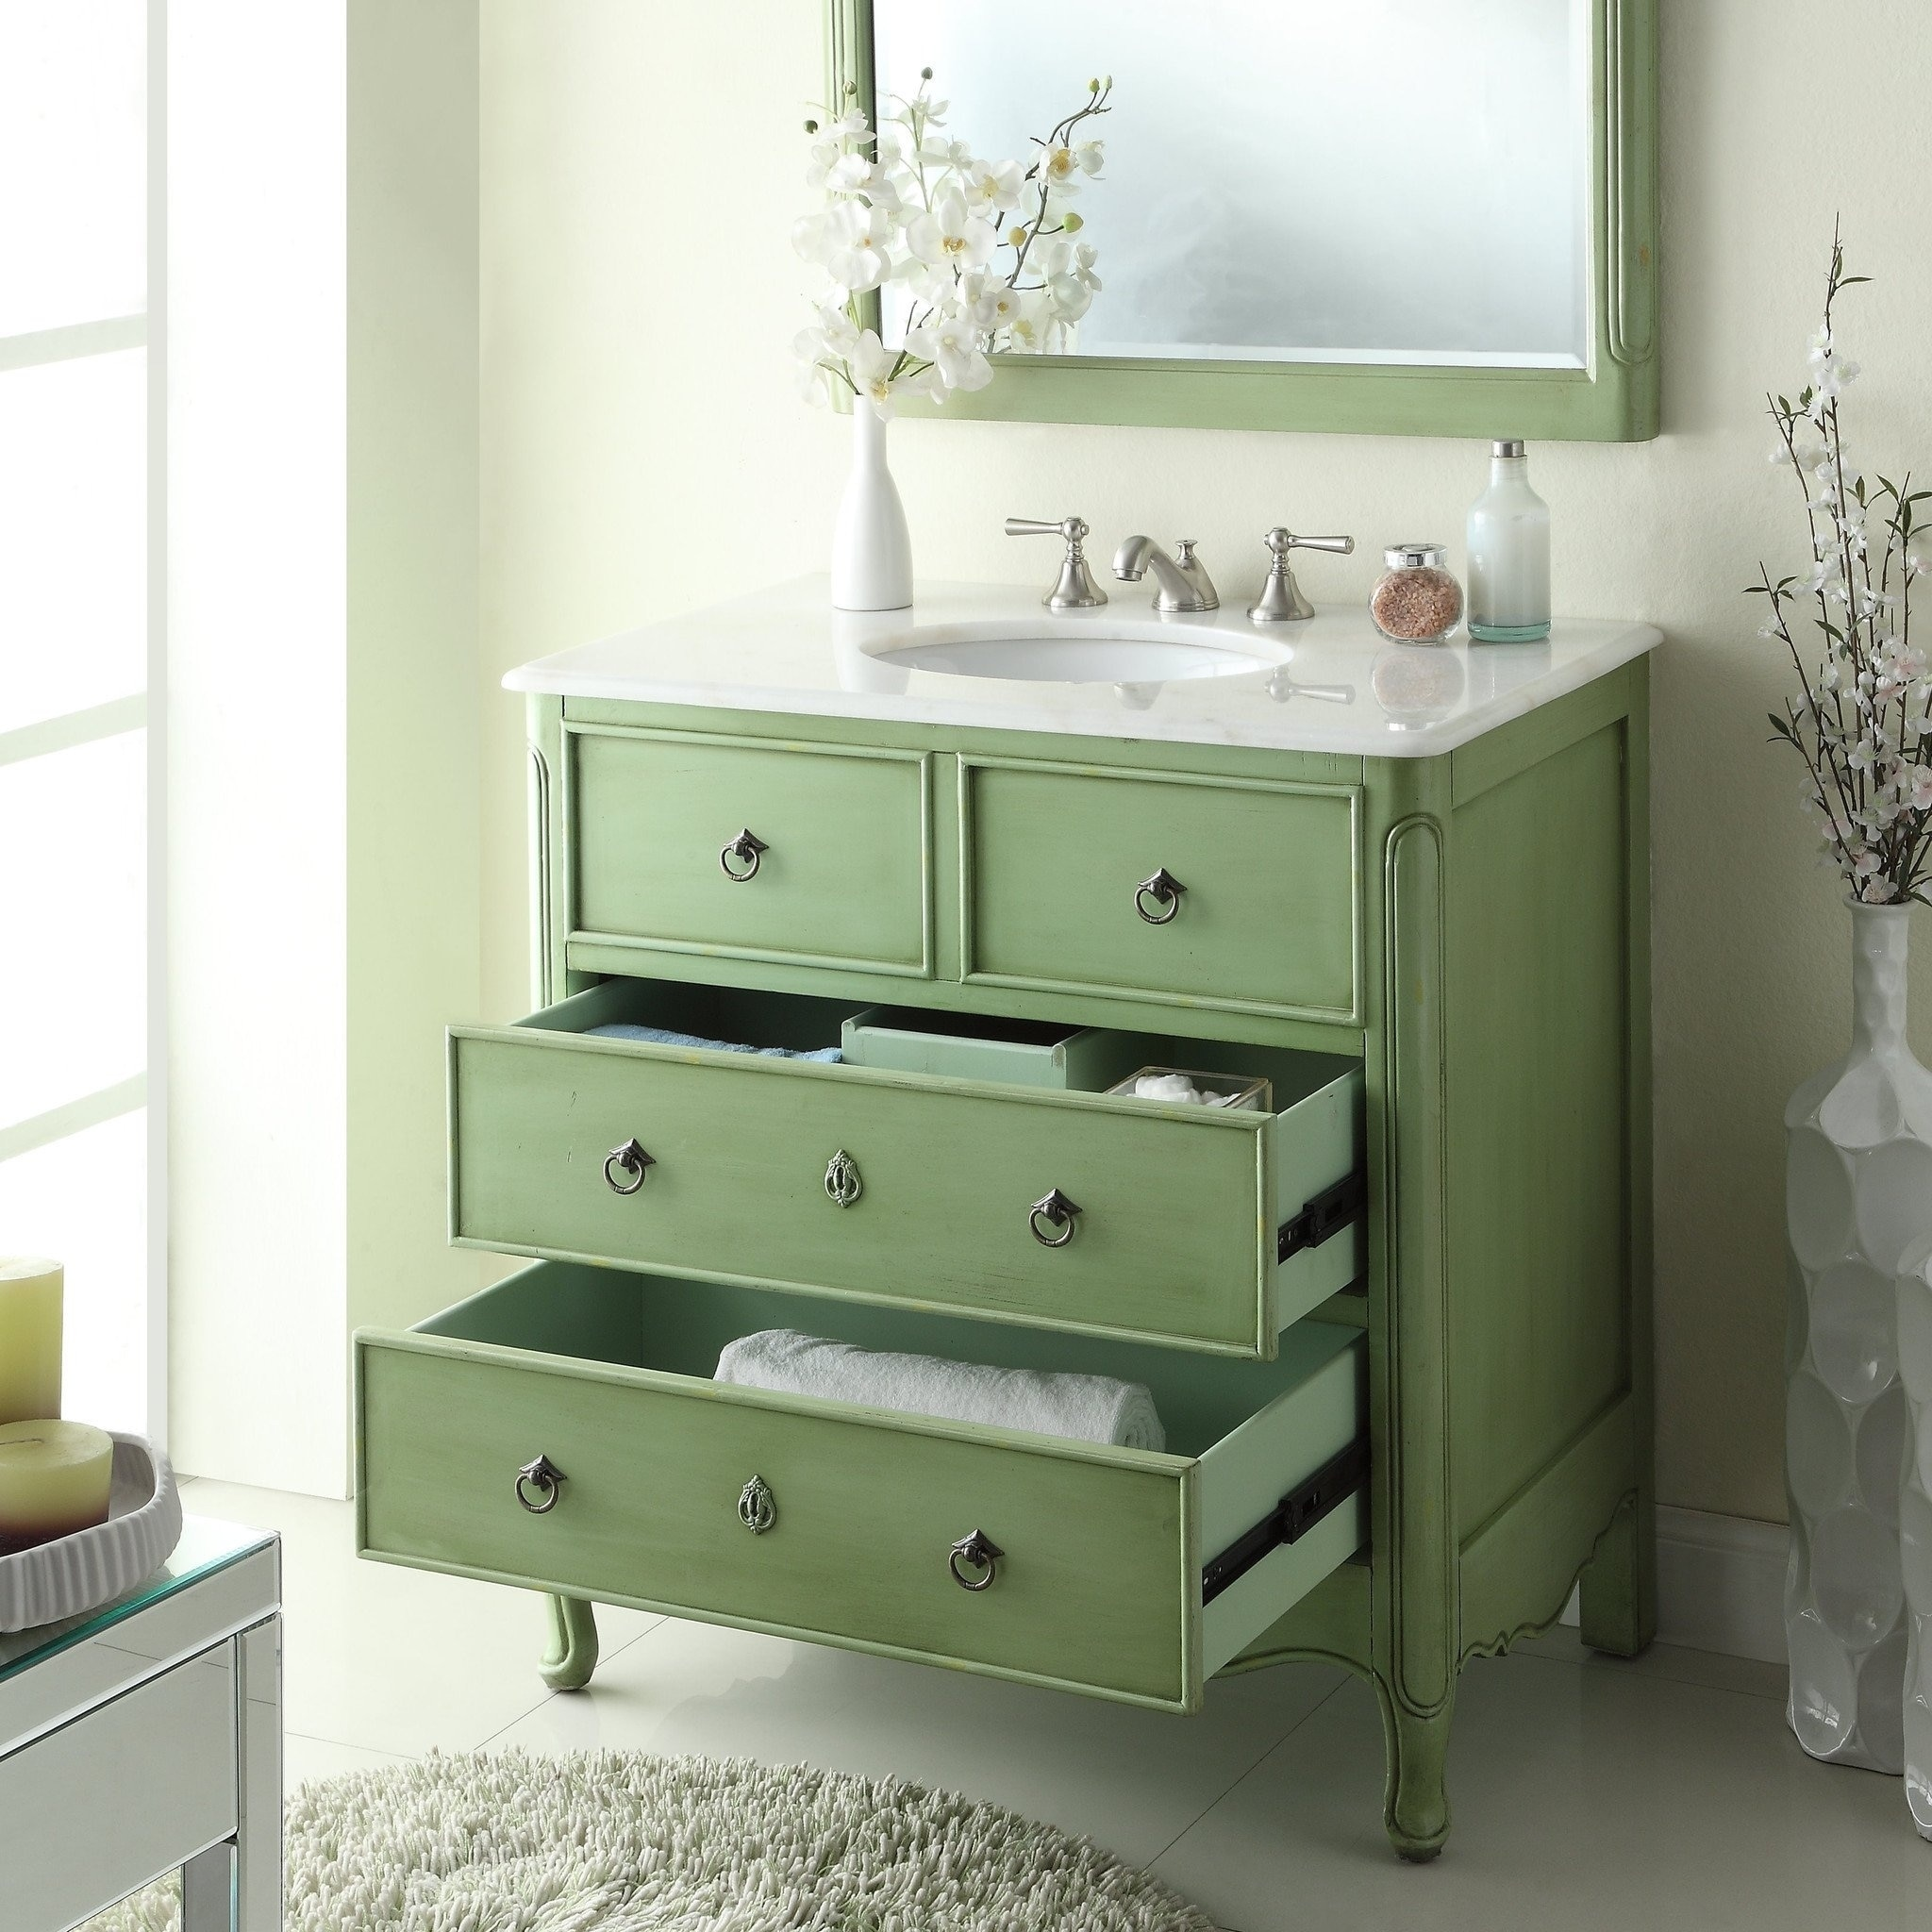 34 Benton Collection Vintage Green Daleville Bathroom Sink Vanity Free Shipping Today 22986191